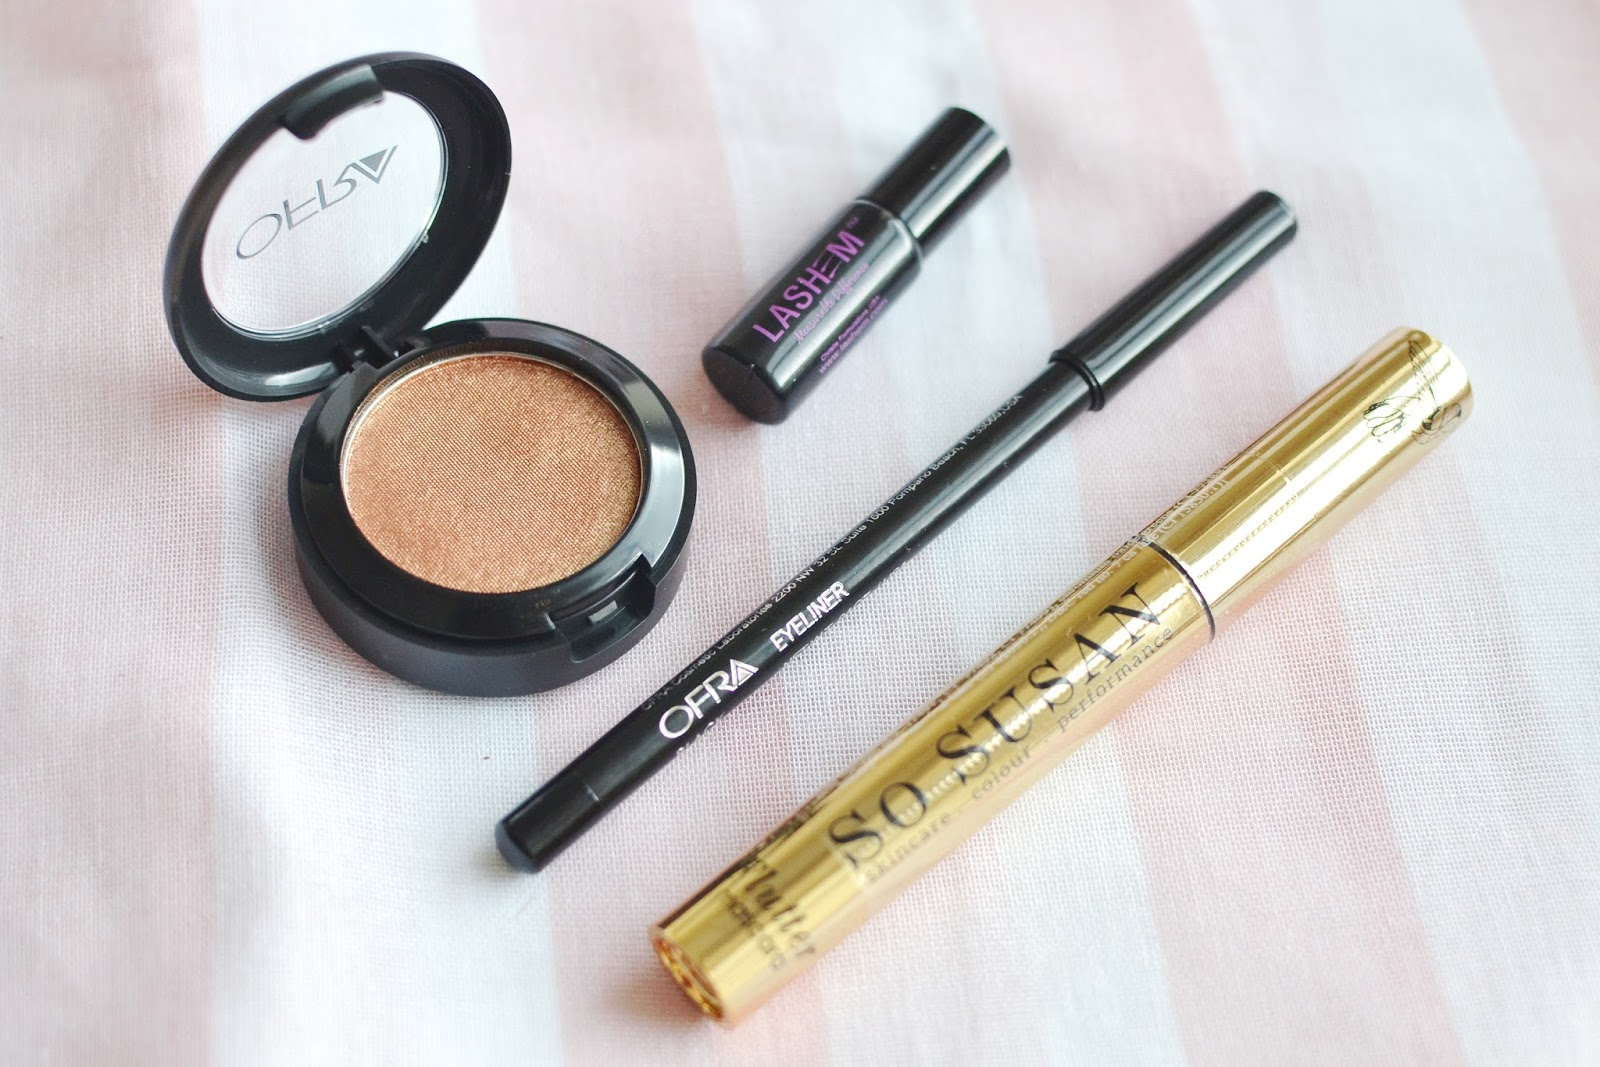 love me beauty box july 2014, beauty blog uk